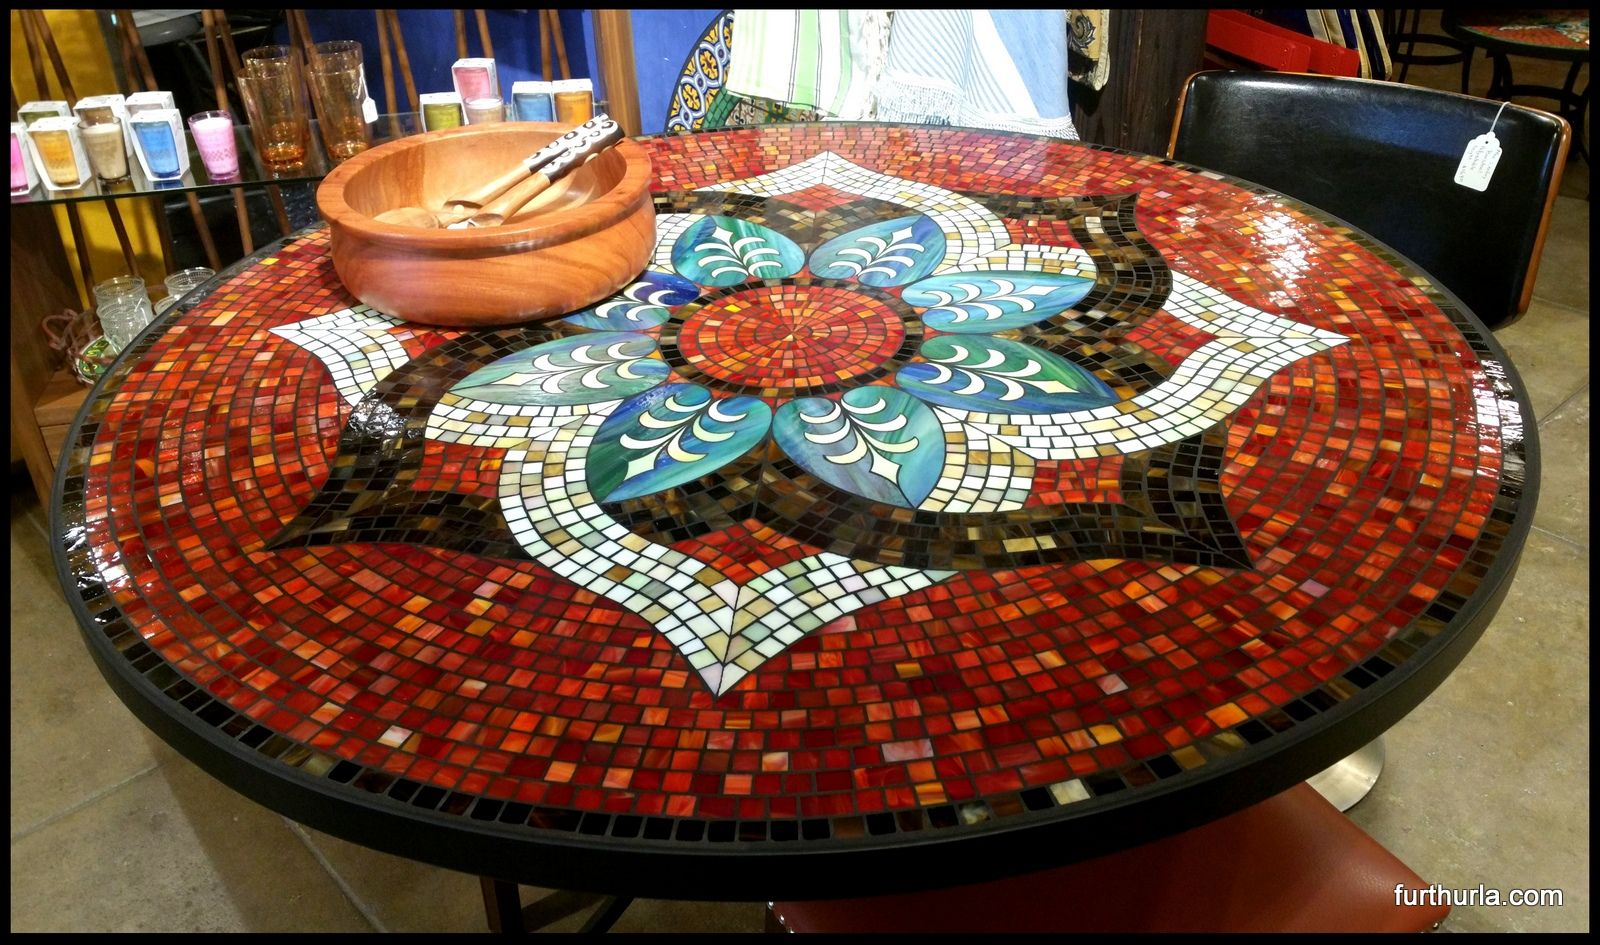 Pin By Monica Takeute On Mosaic Mosaic Mosaic Crafts Table